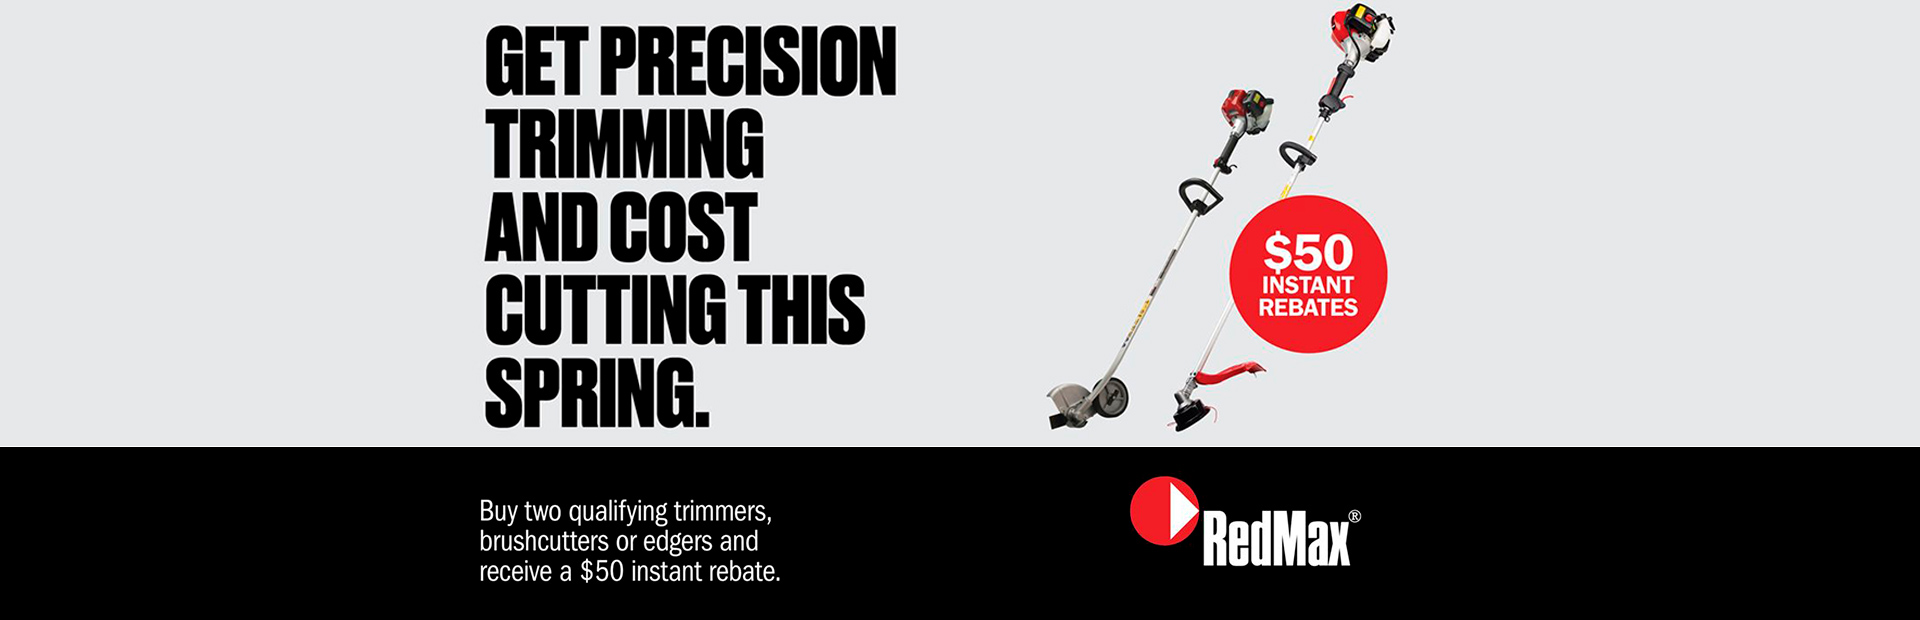 RedMax: Line Trimmer Rebate Promo